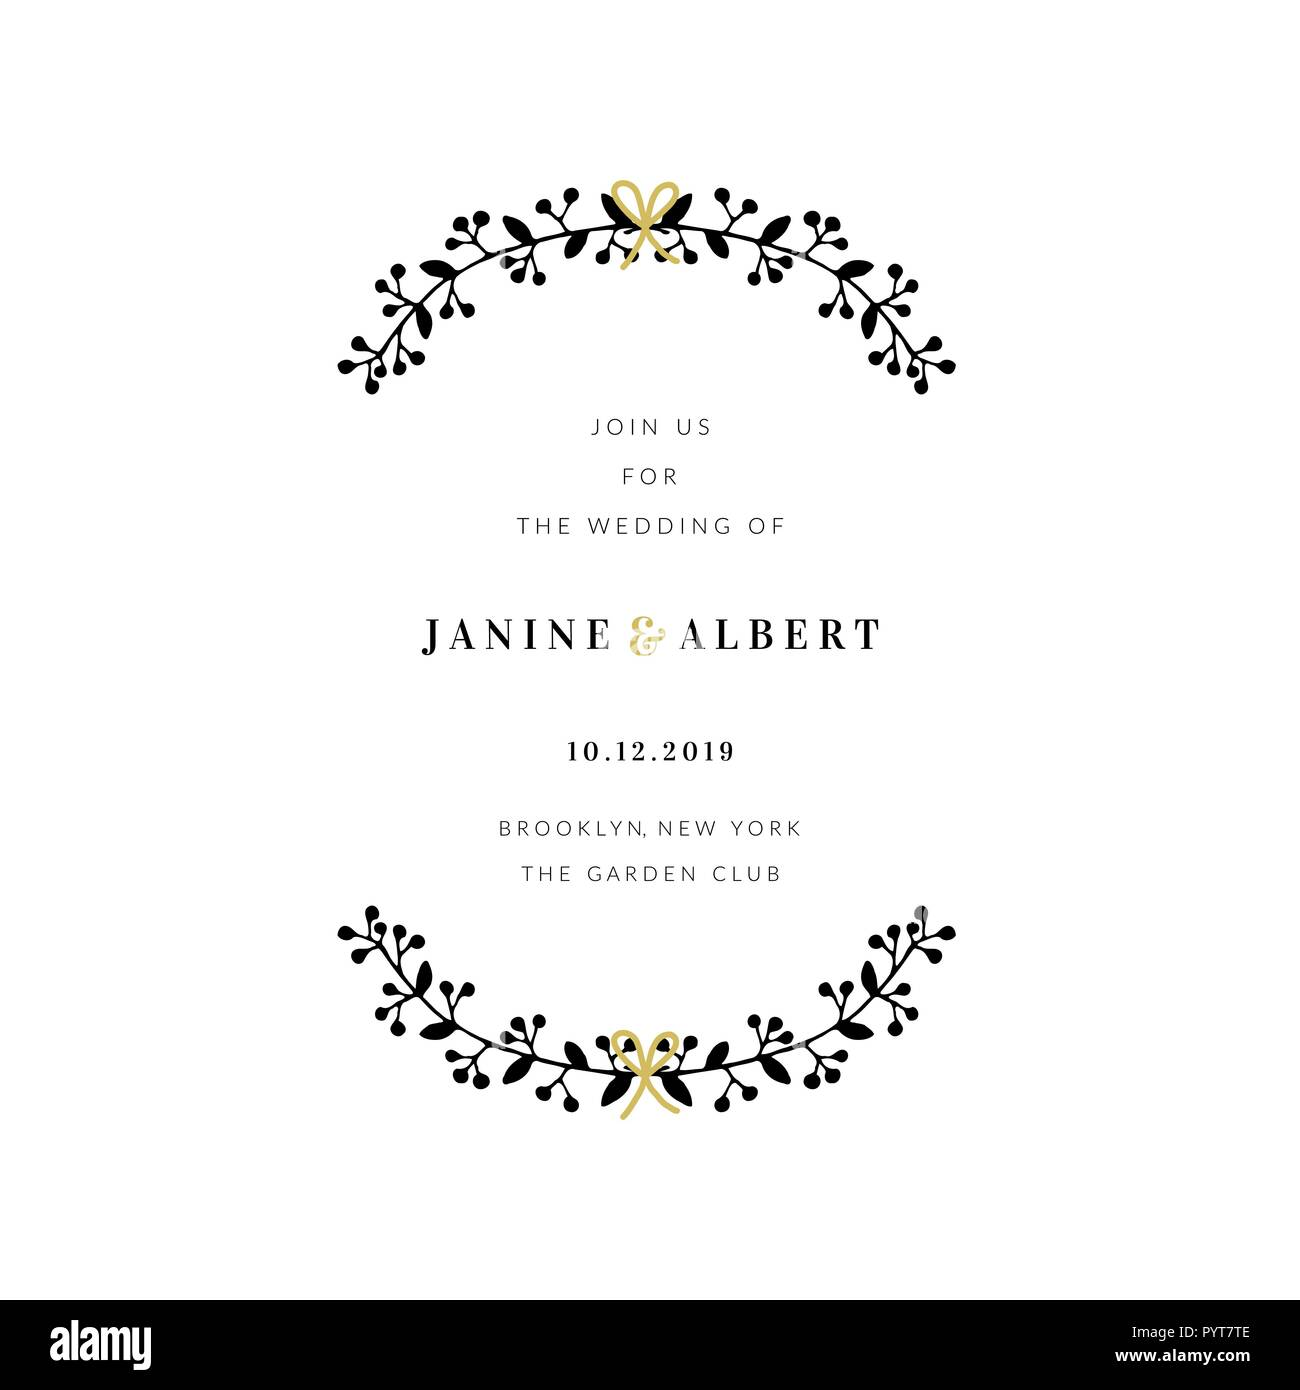 Wedding Invitation Design Template With Floral Decoration Sample